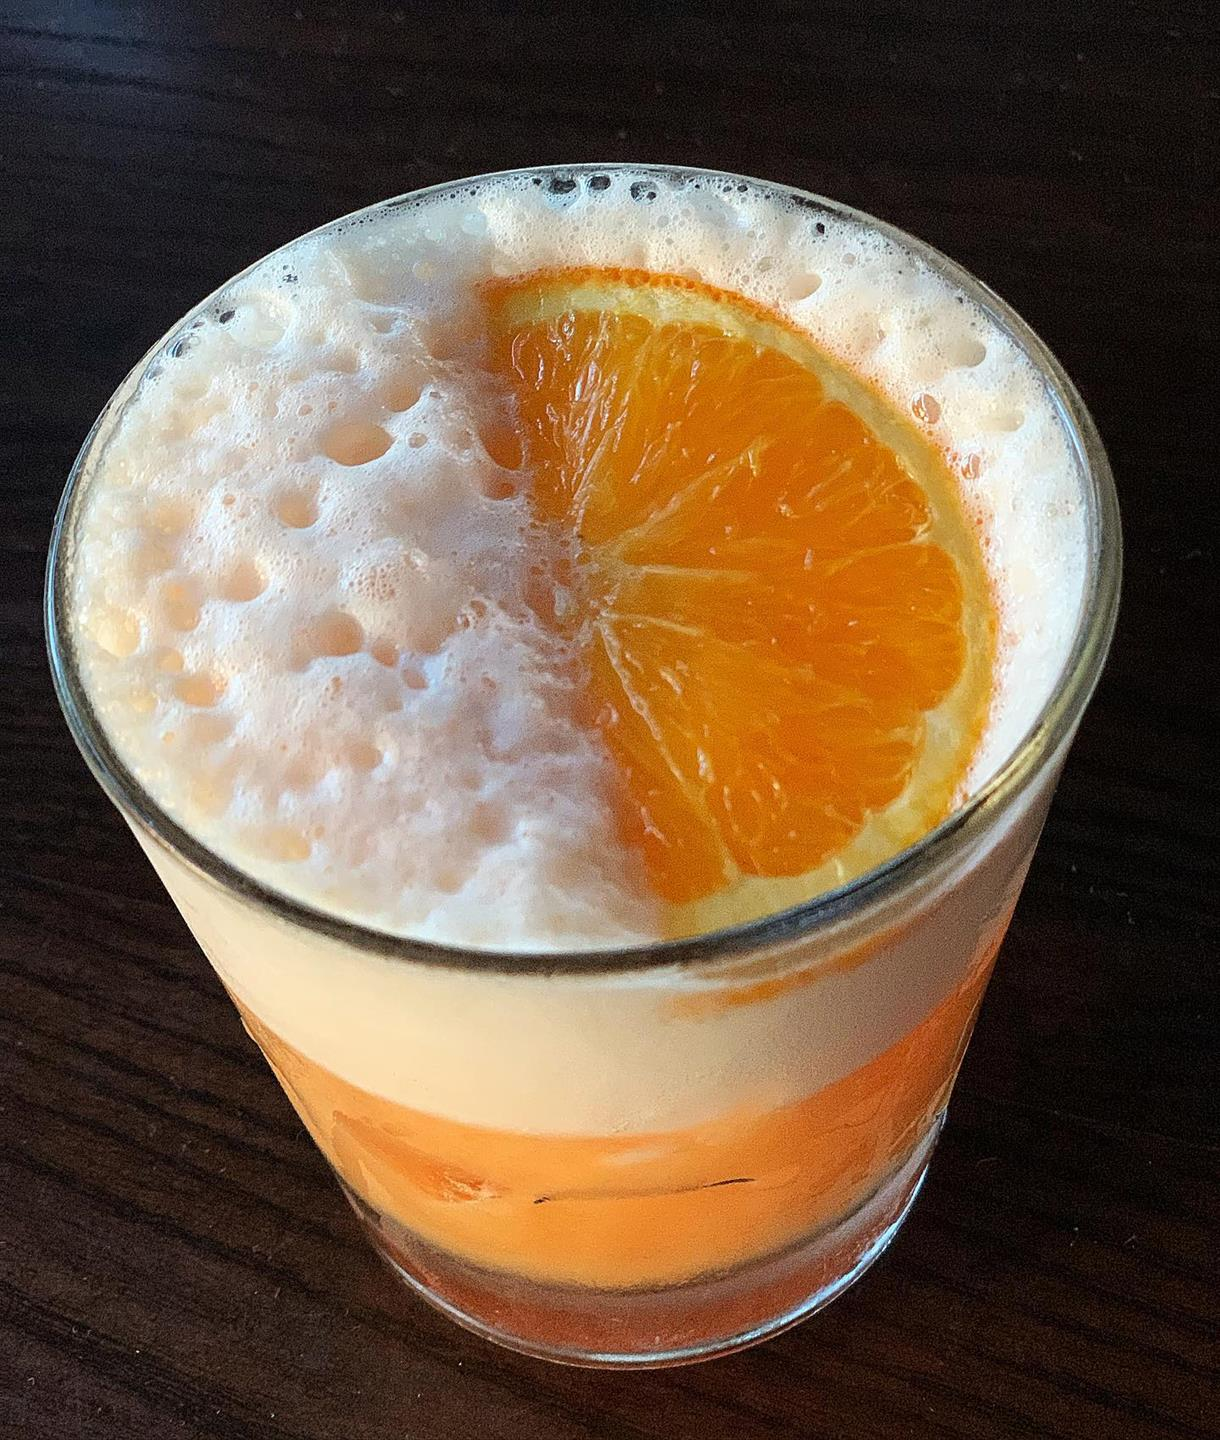 cocktail with an orange wedge